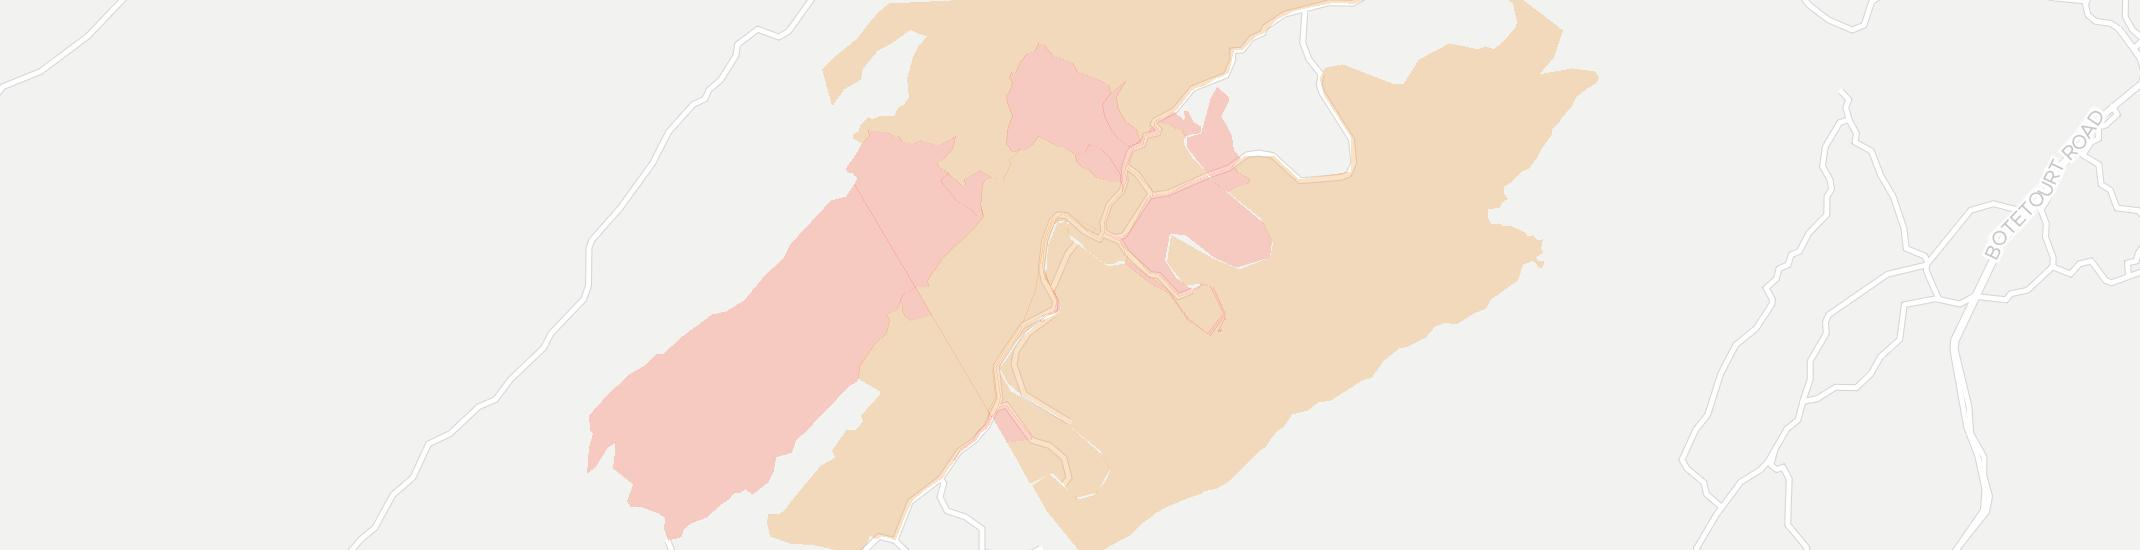 Oriskany Internet Competition Map. Click for interactive map.